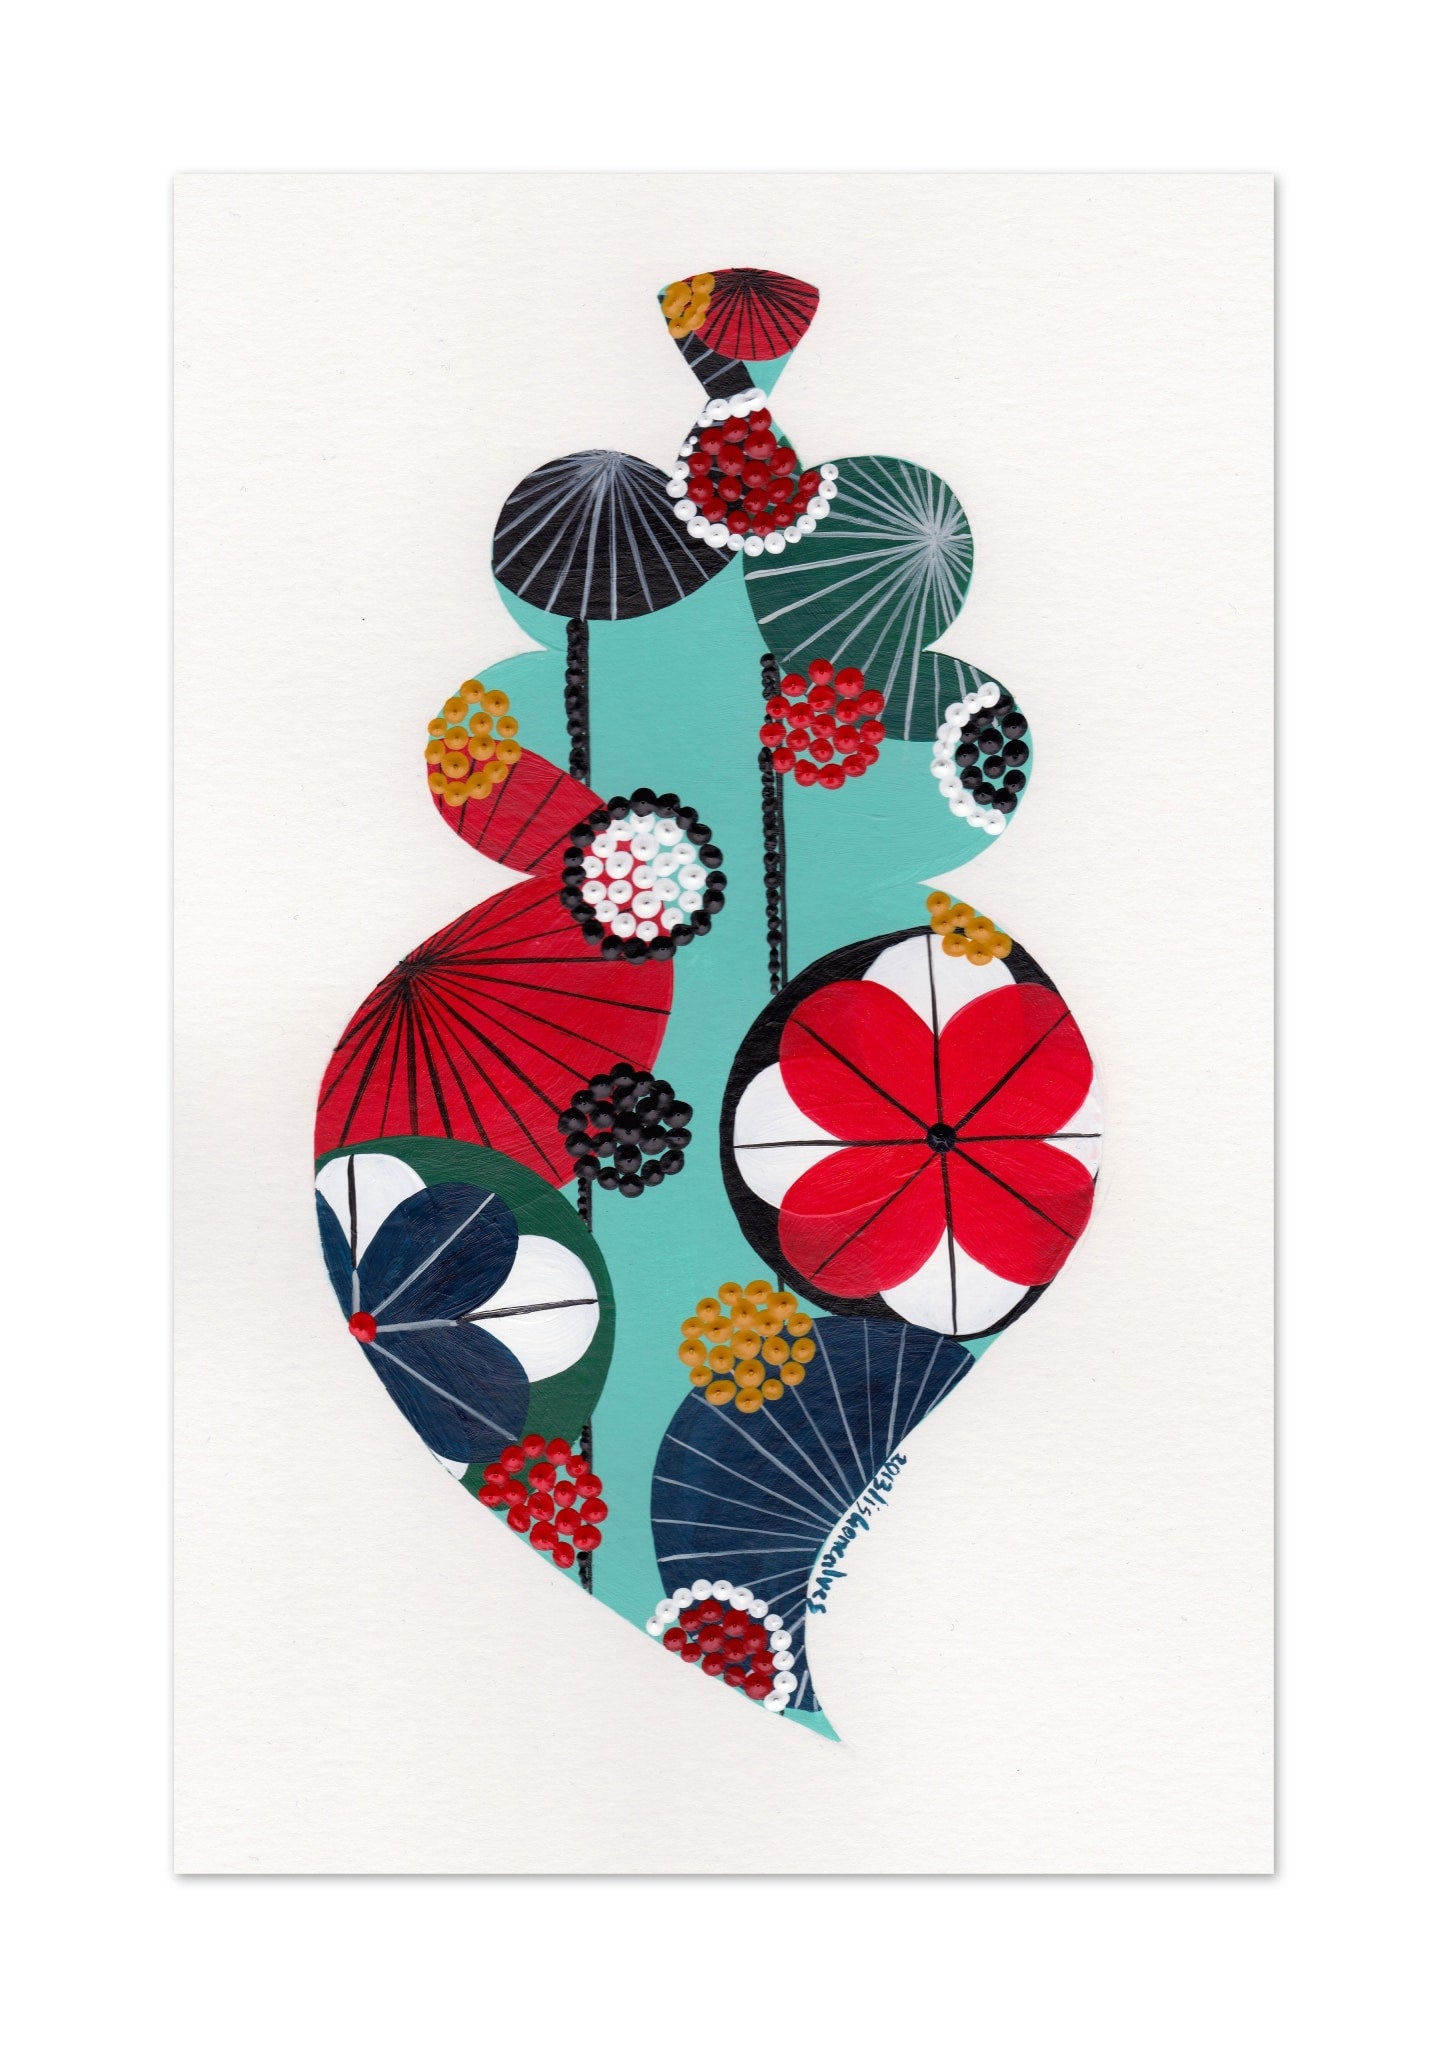 Portuguese heart art print in turquoise by Lis Goncalves